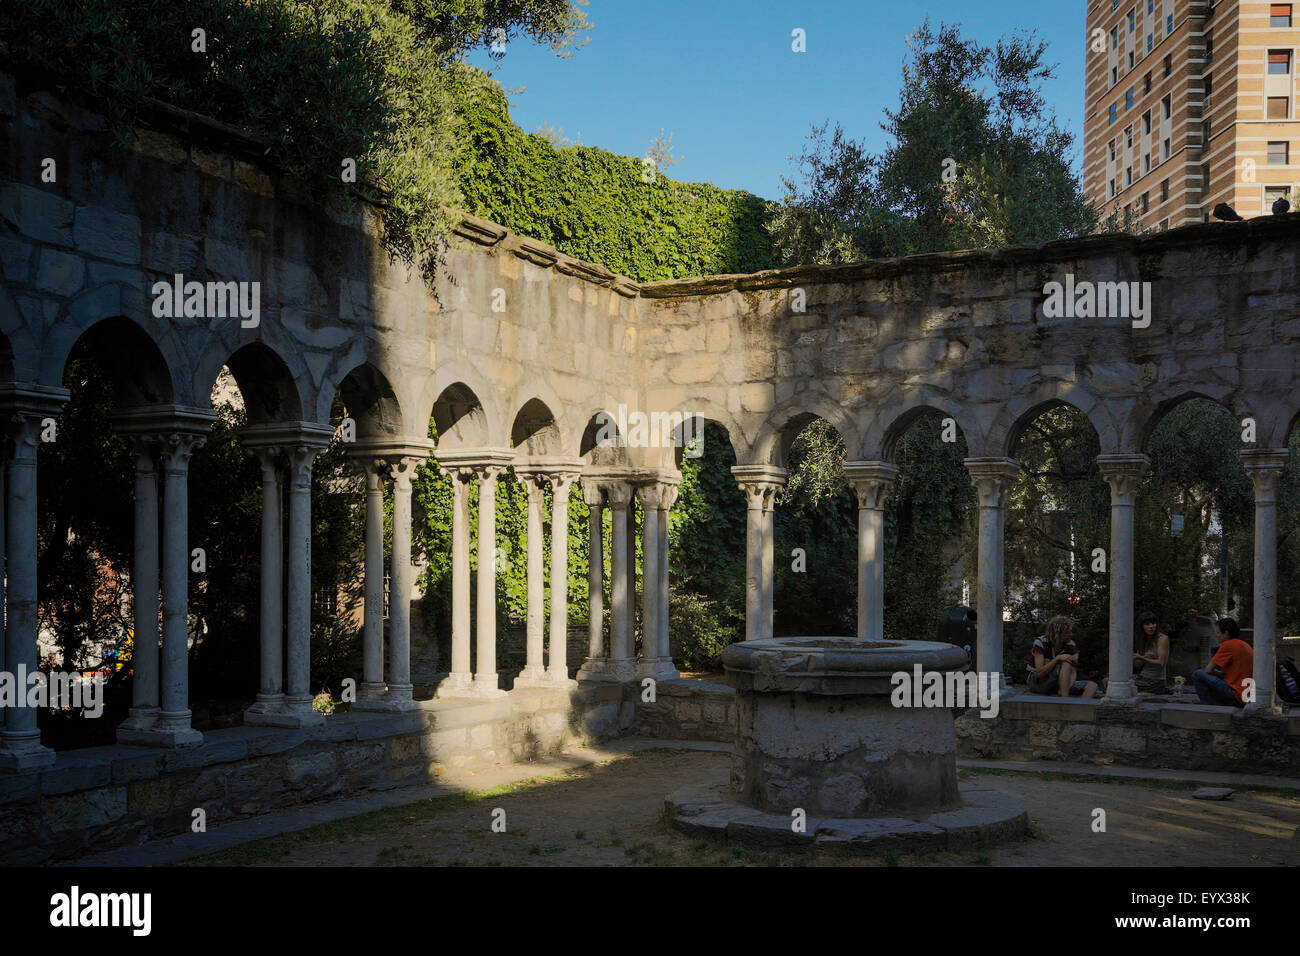 Genoa, Liguria, Italy.  12th century cloisters of Sant'Andrea. The cloisters belonged to a convent which has - Stock Image